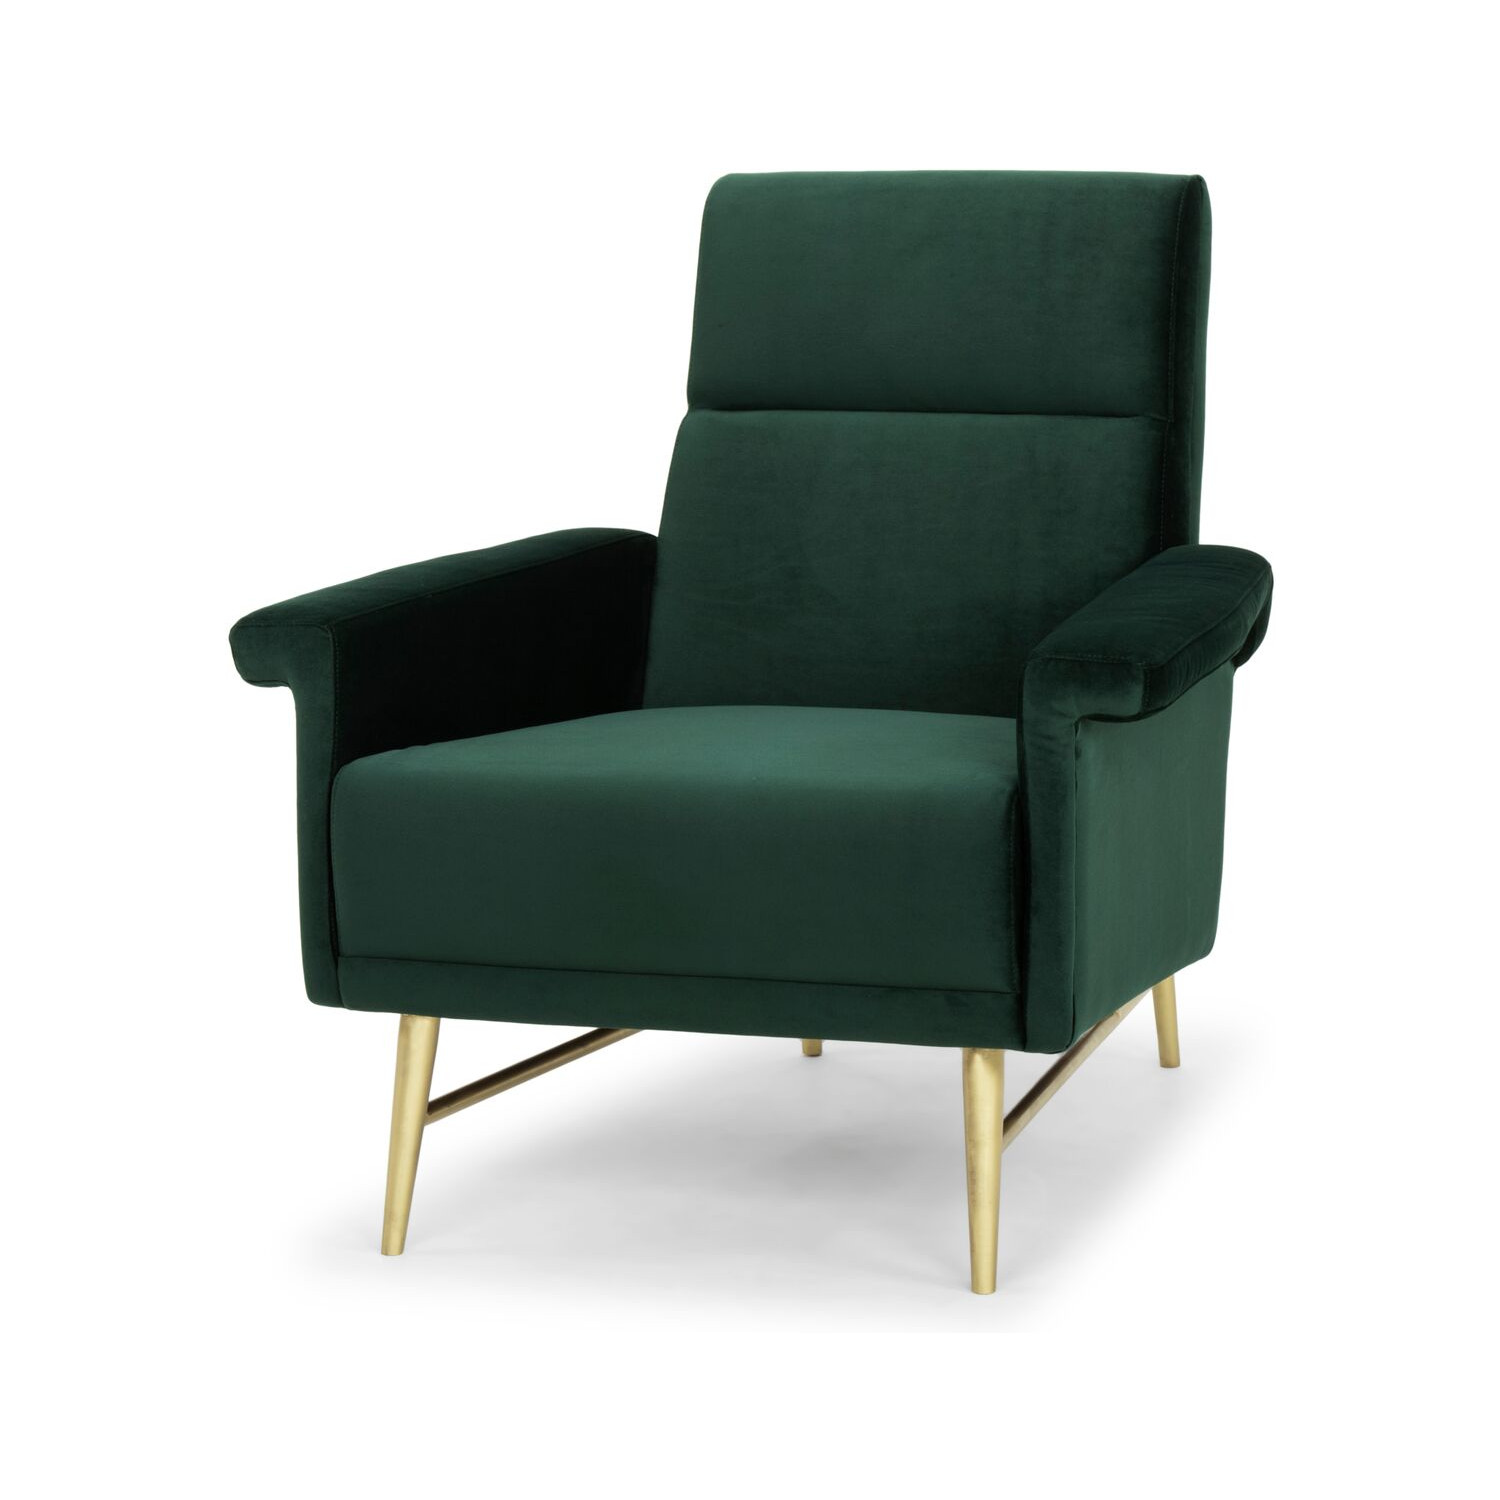 Nuevo Modern Furniture HGSC342 Mathise Accent Chair in Emerald Green